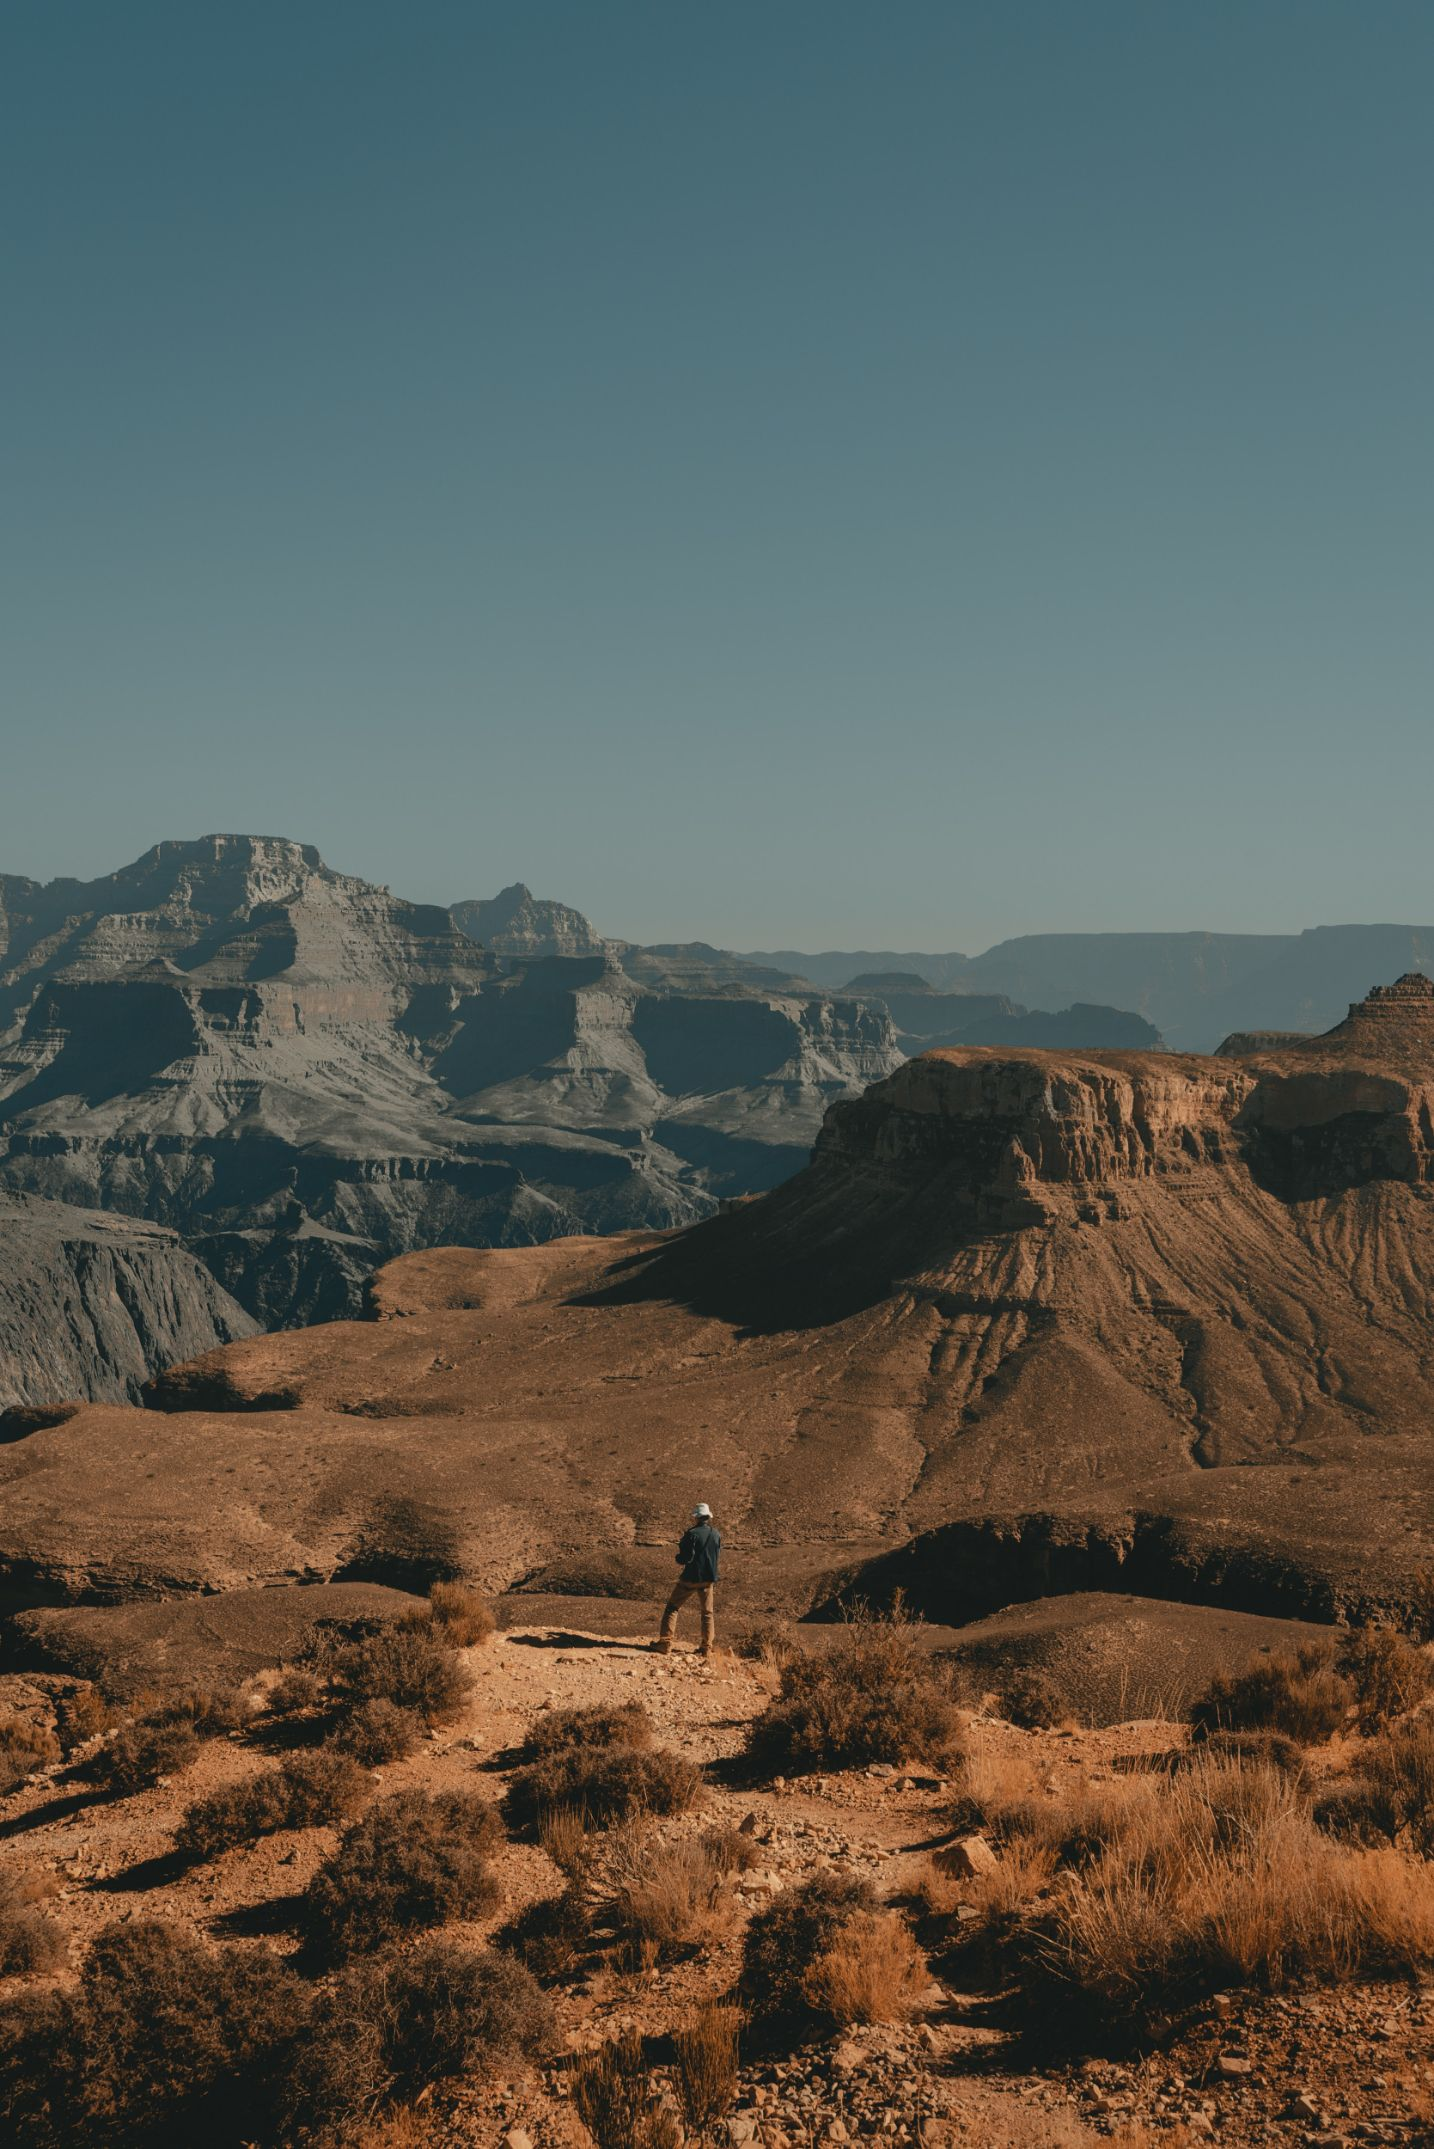 dry red rocks and canyons in Arizona